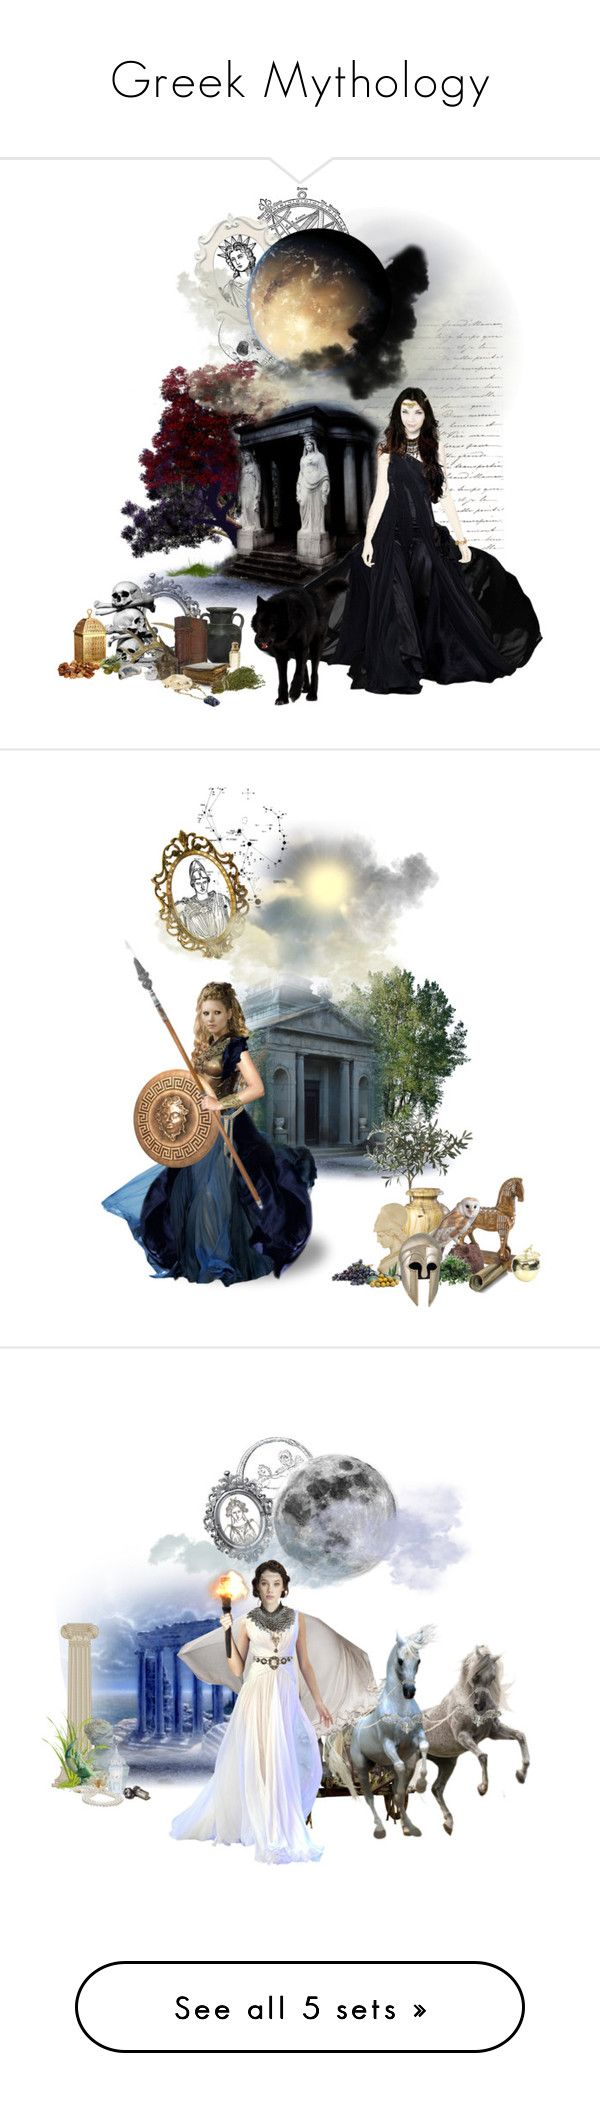 What are the similarities between norse and greek mythology?